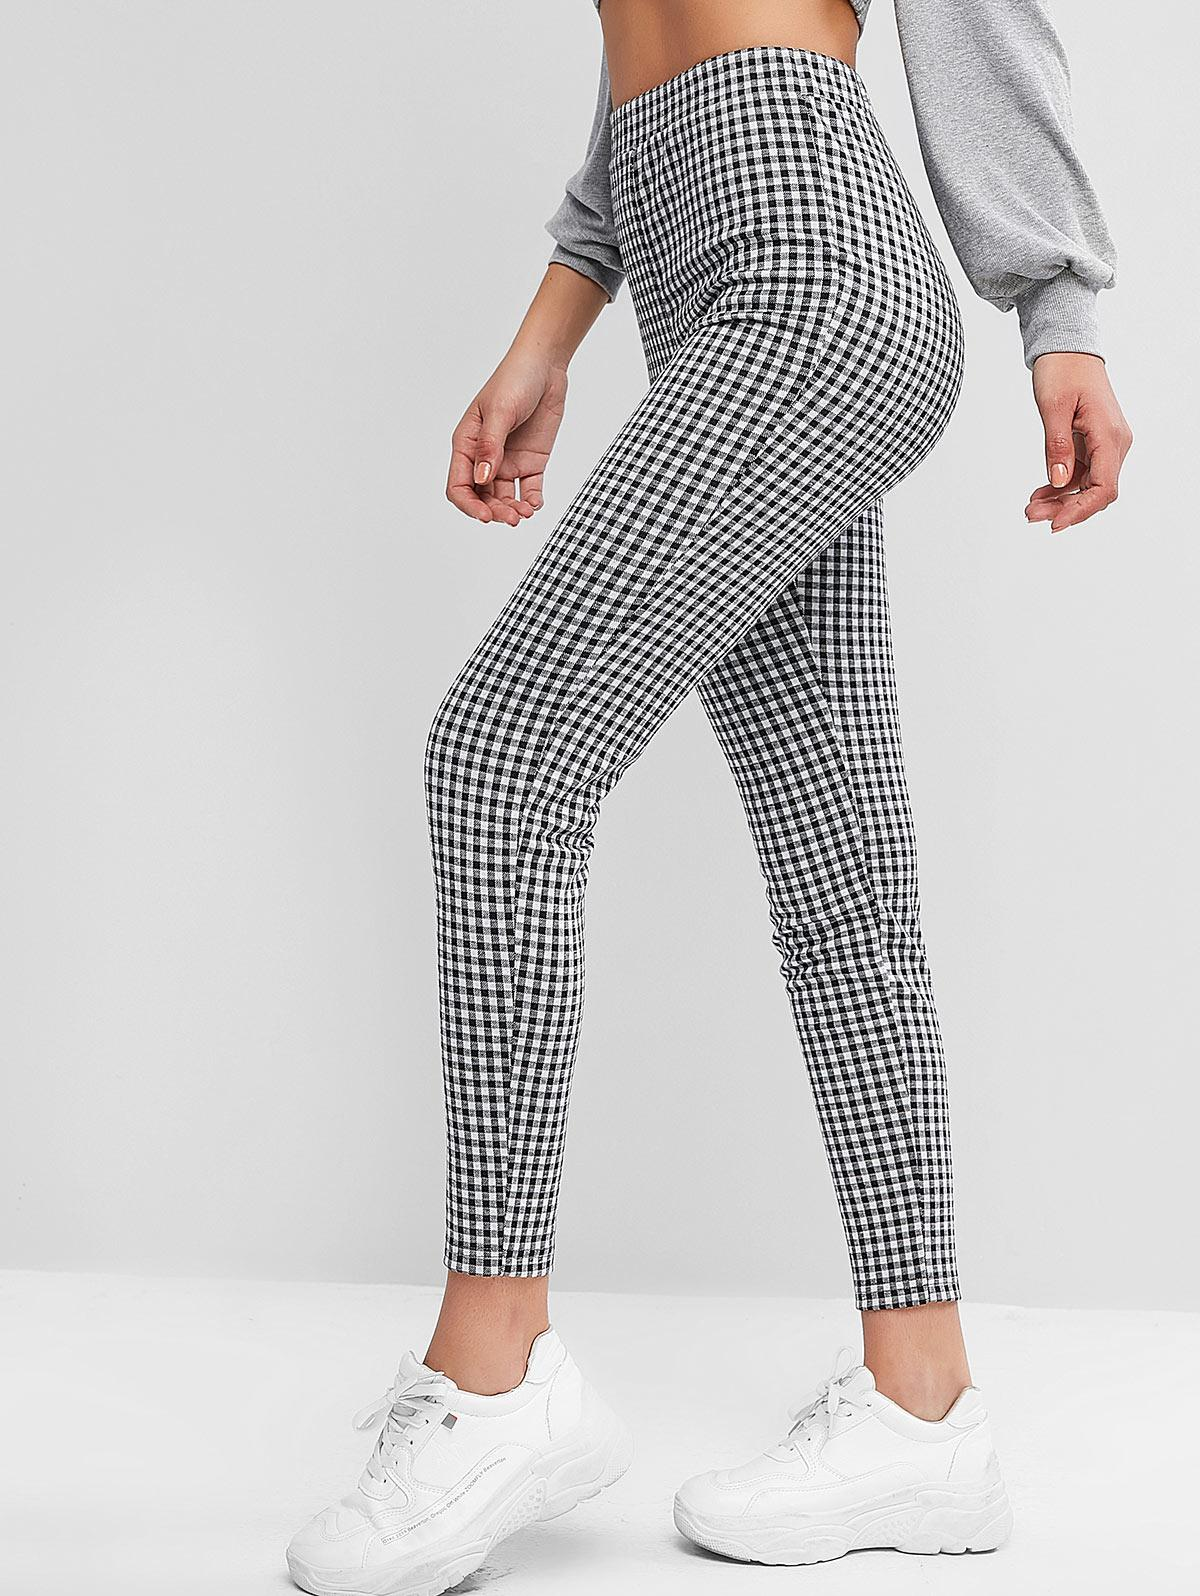 ZAFUL Plaid High Waisted Skinny Leggings